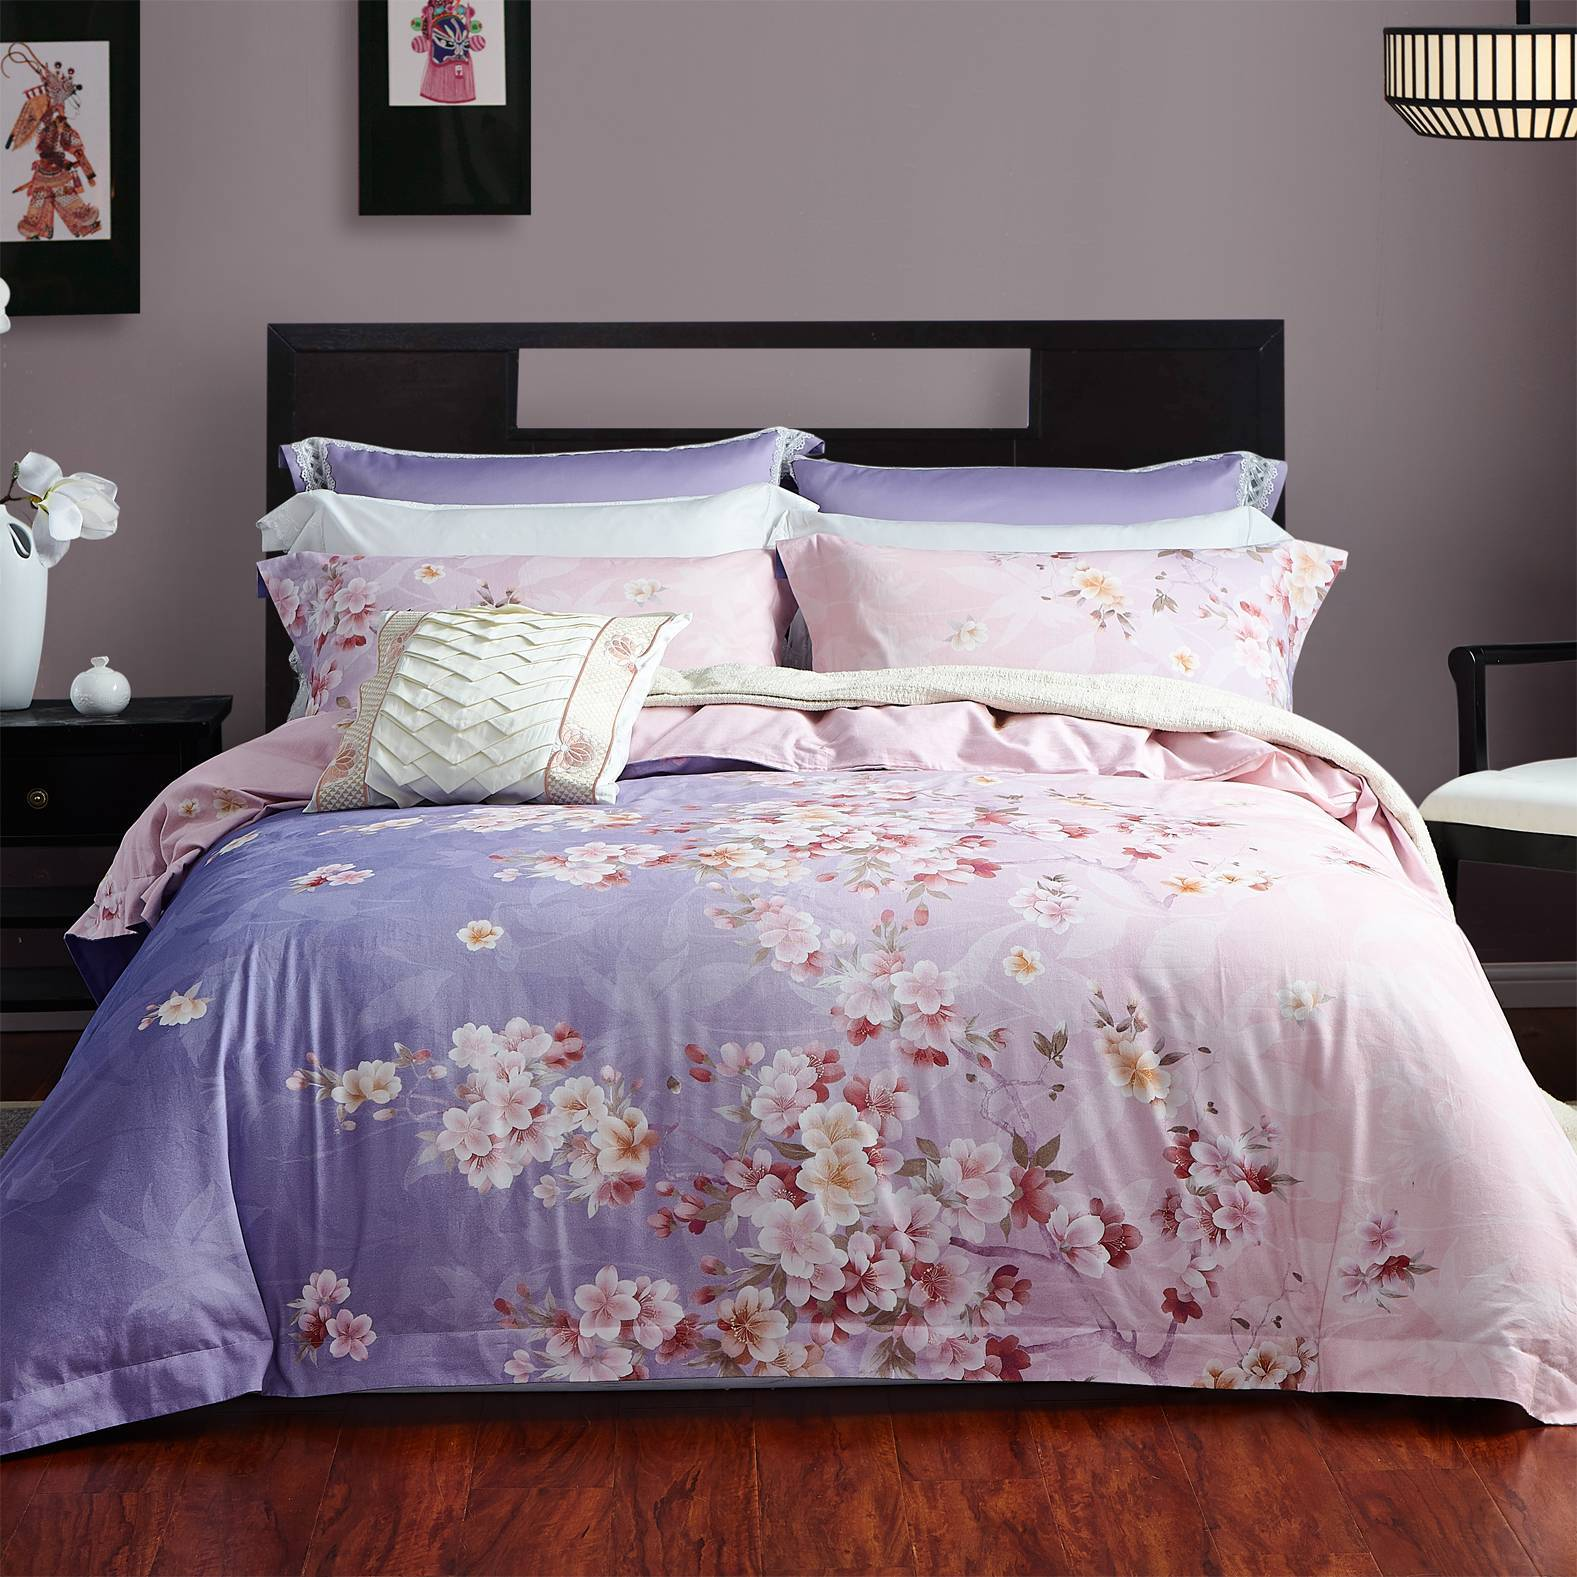 Special Designed Bedding Set 100% Brushed Cotton